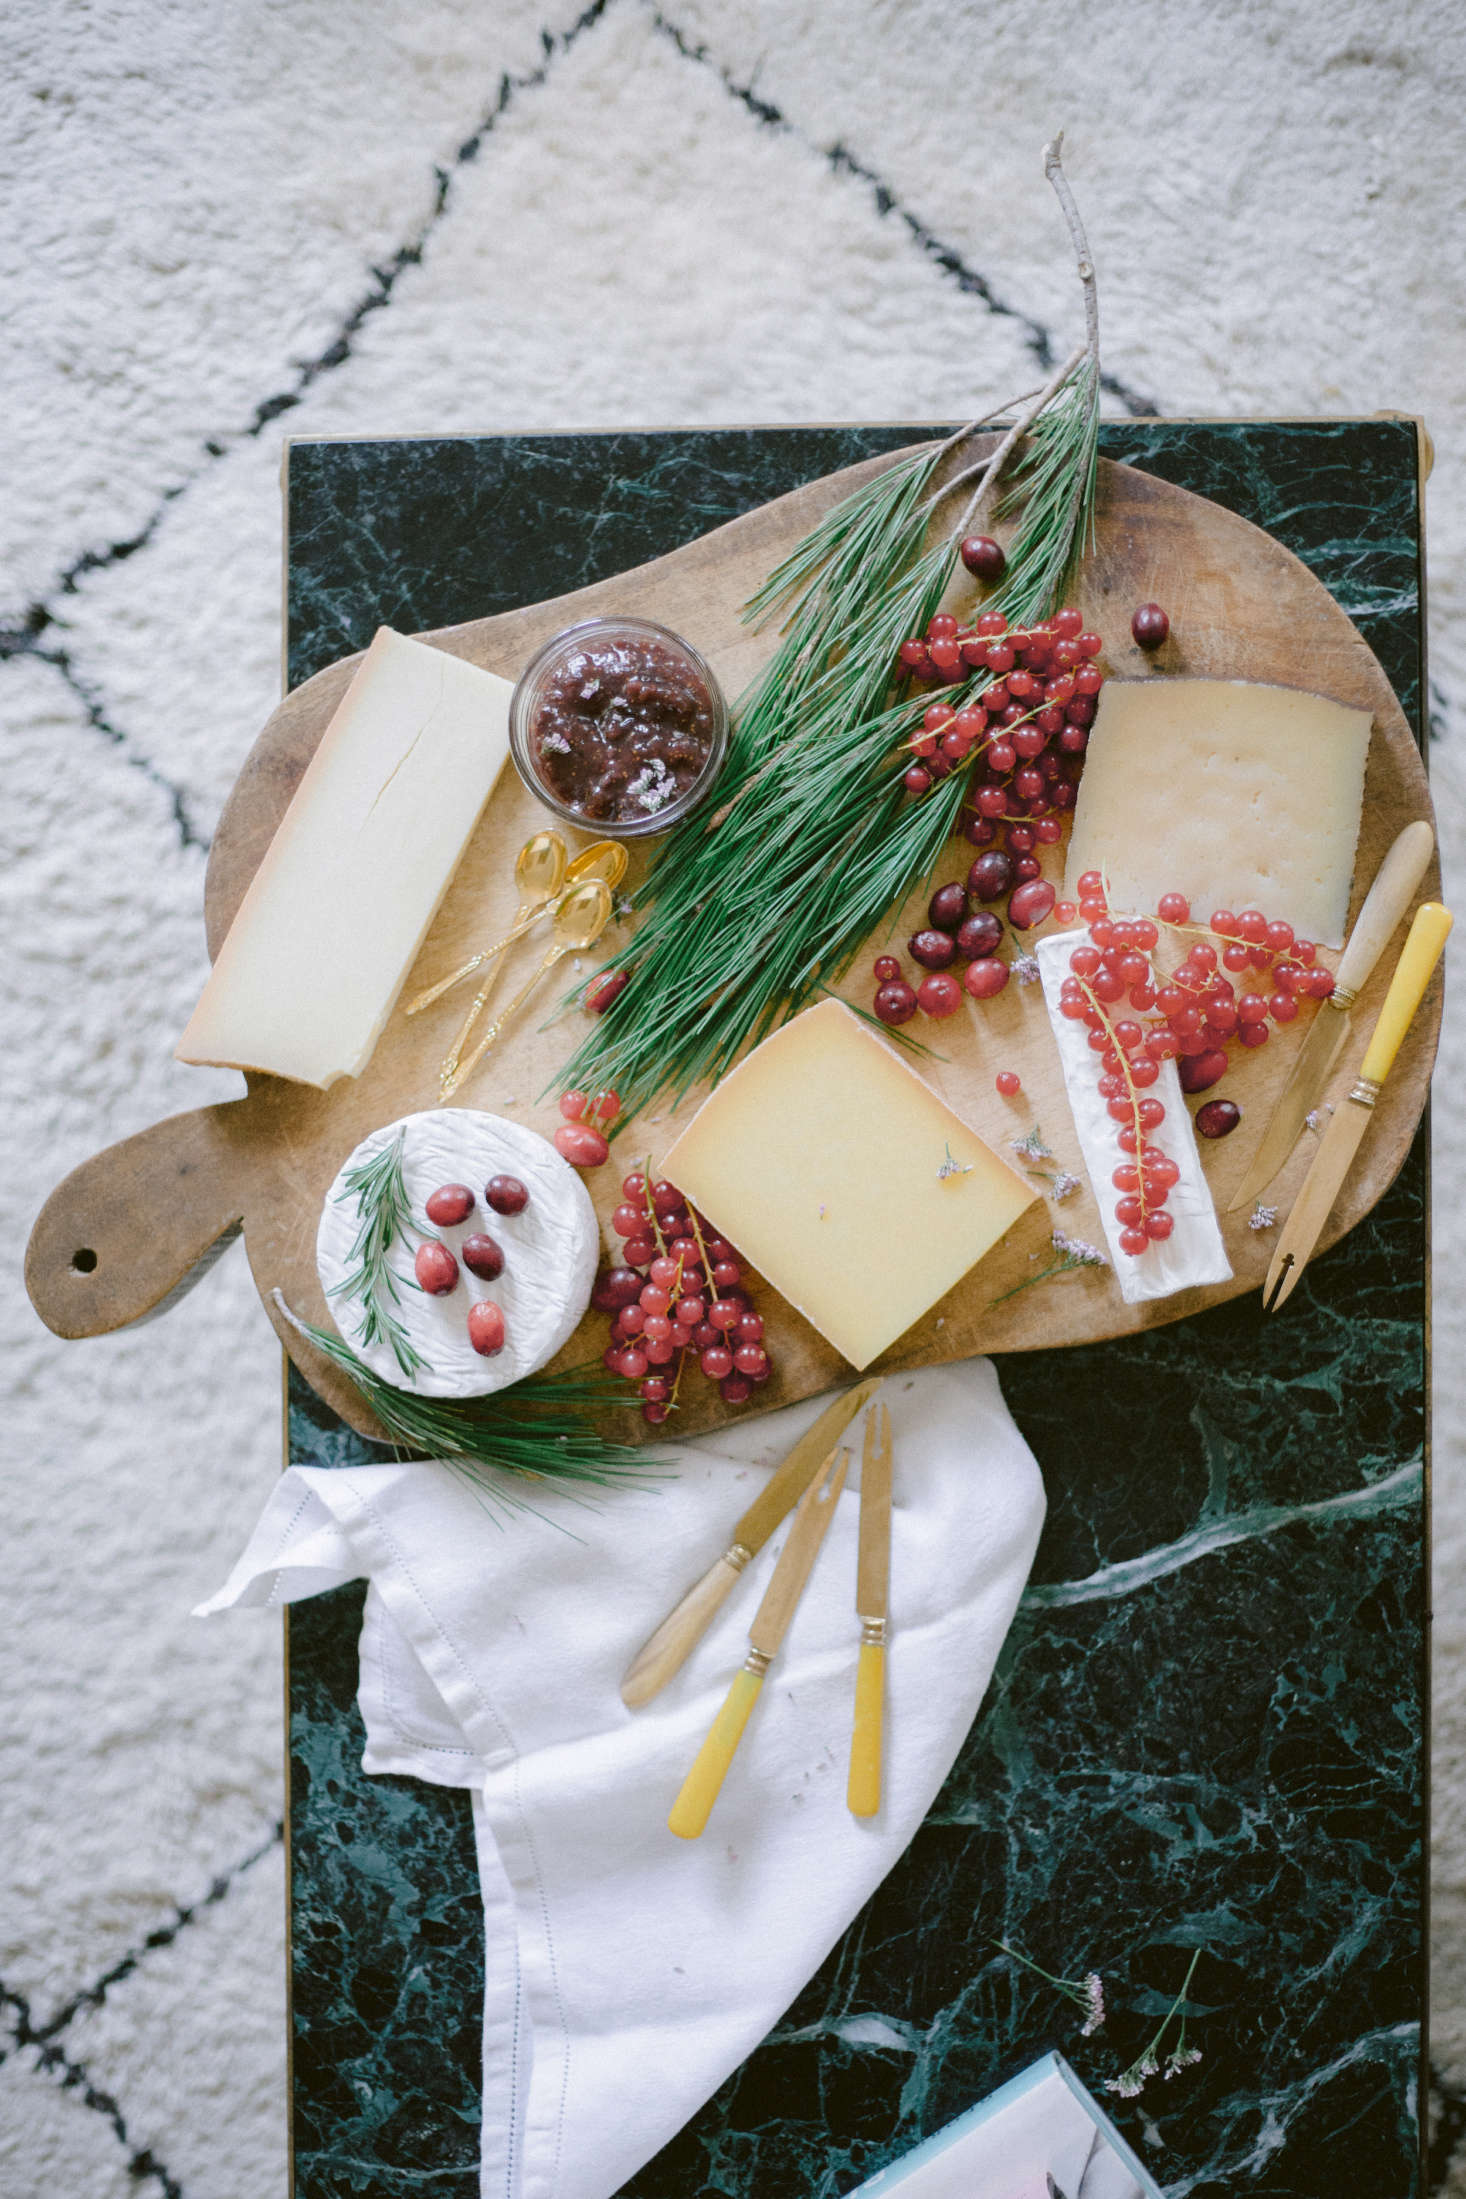 Tiny pink berries and greens add liveliness to the cheese board.